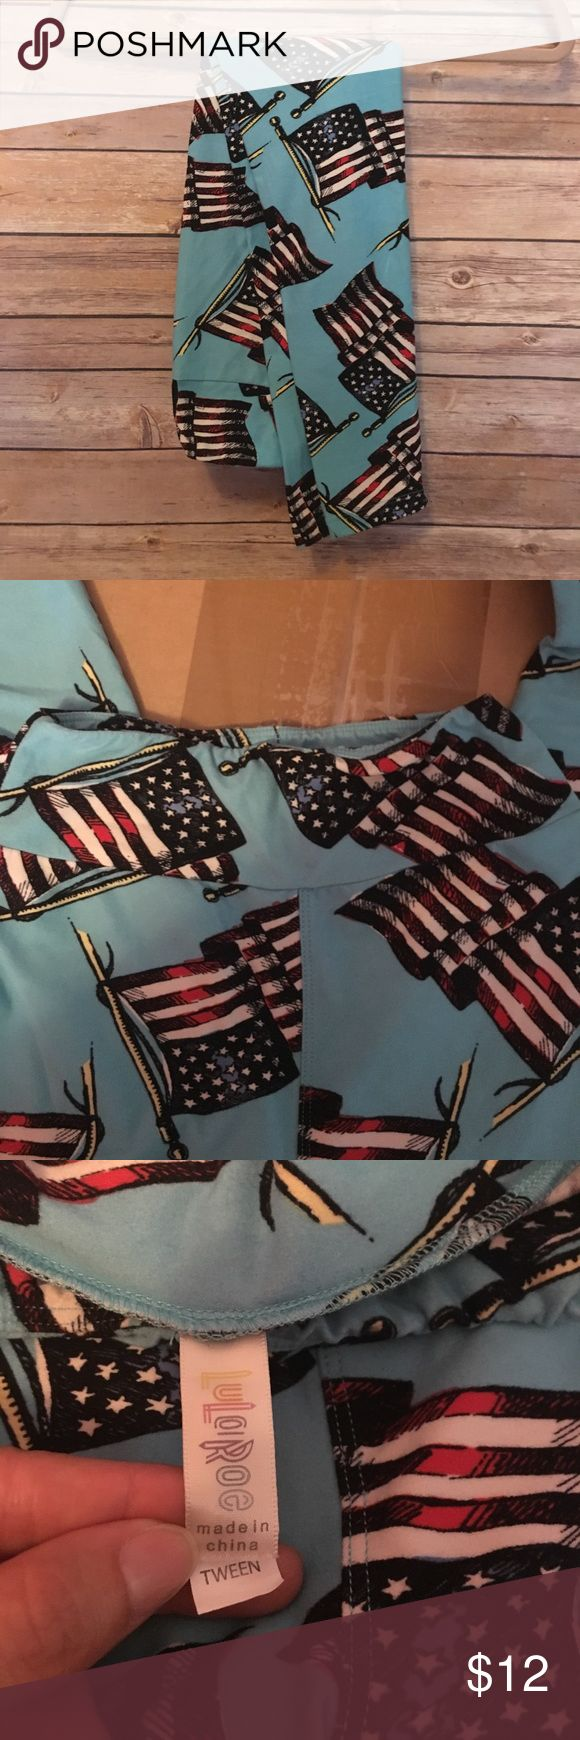 LuLaRoe Americana 2016 Tween Leggings Gently used LuLaRoe 2016 Americana collection leggings in Tween size. Turquoise background with American flags. Tween fits either girls size 12-14 or ladies size 00-0. The waistband seems to be a little puckered but not noticeable once they are on. I gained too much weight to fit into Tween size anymore. Smoke free but pet-friendly home LuLaRoe Pants Leggings